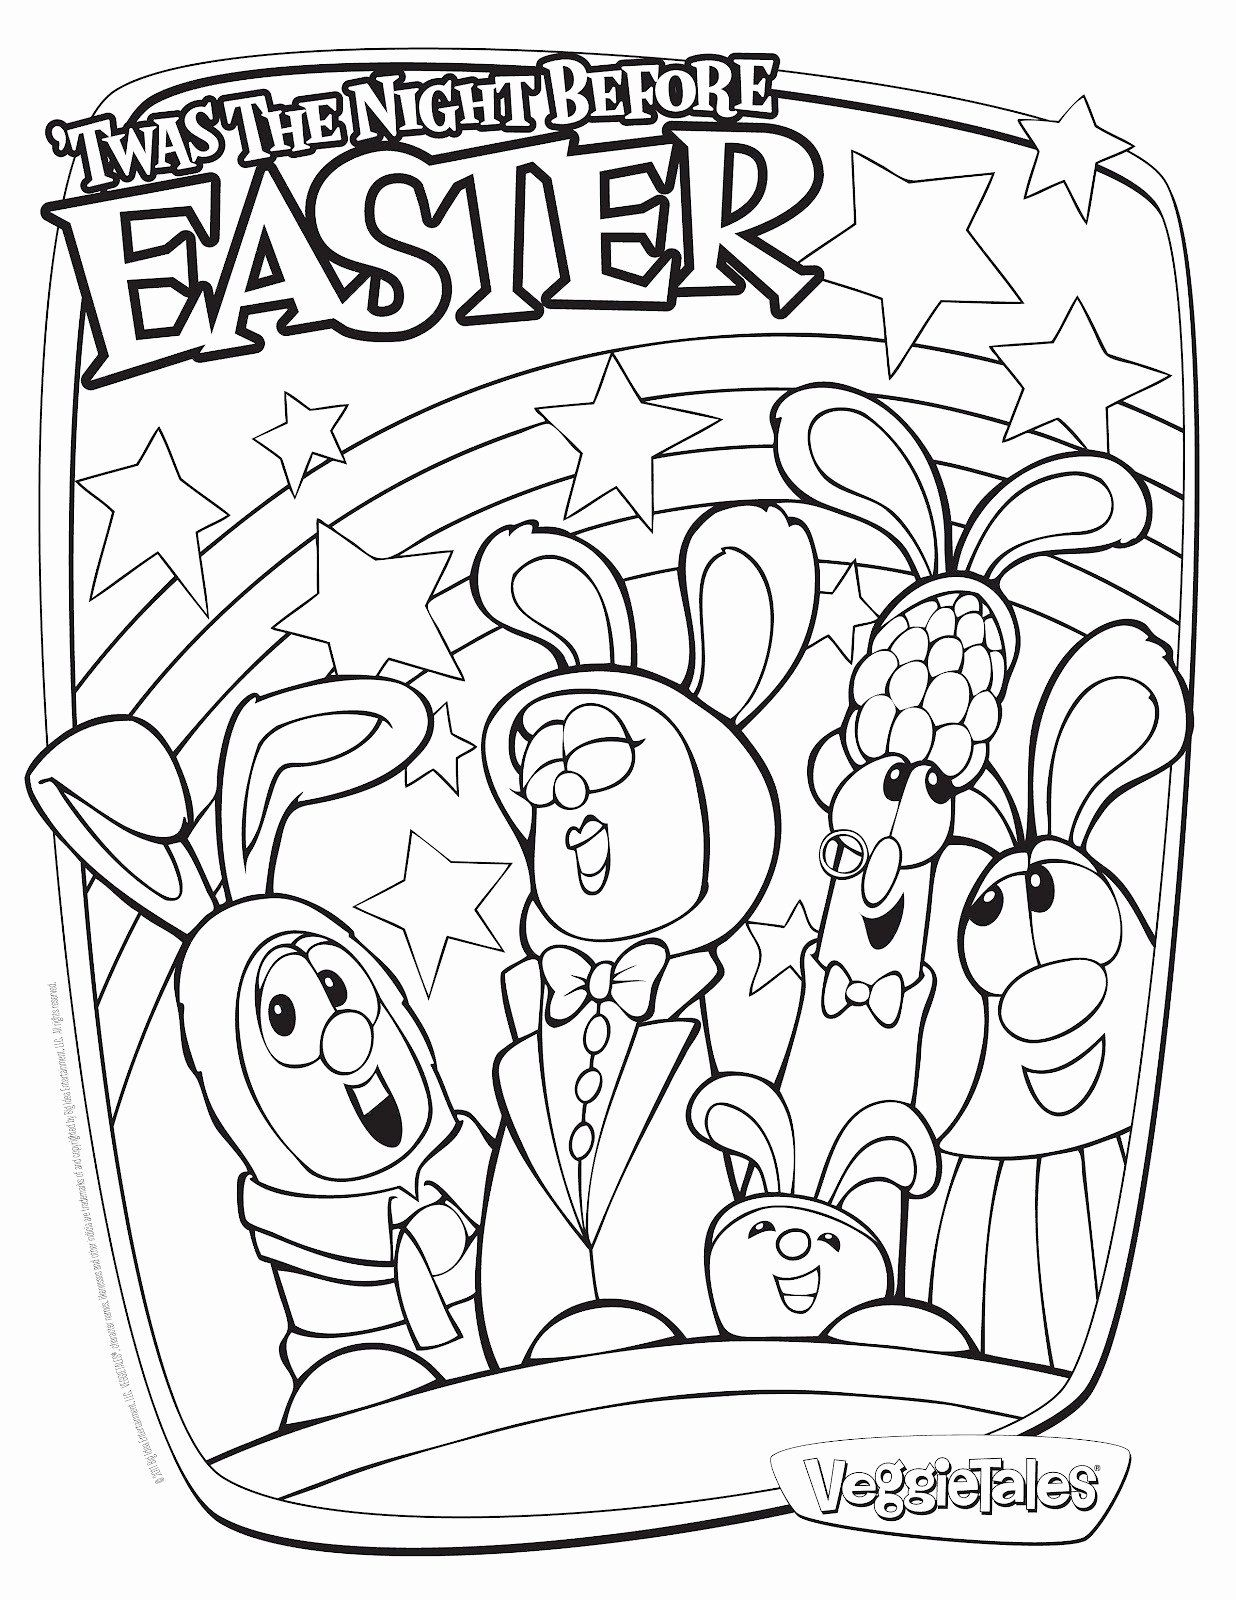 Johnny Appleseed Coloring Sheet Luxury Johnny Appleseed